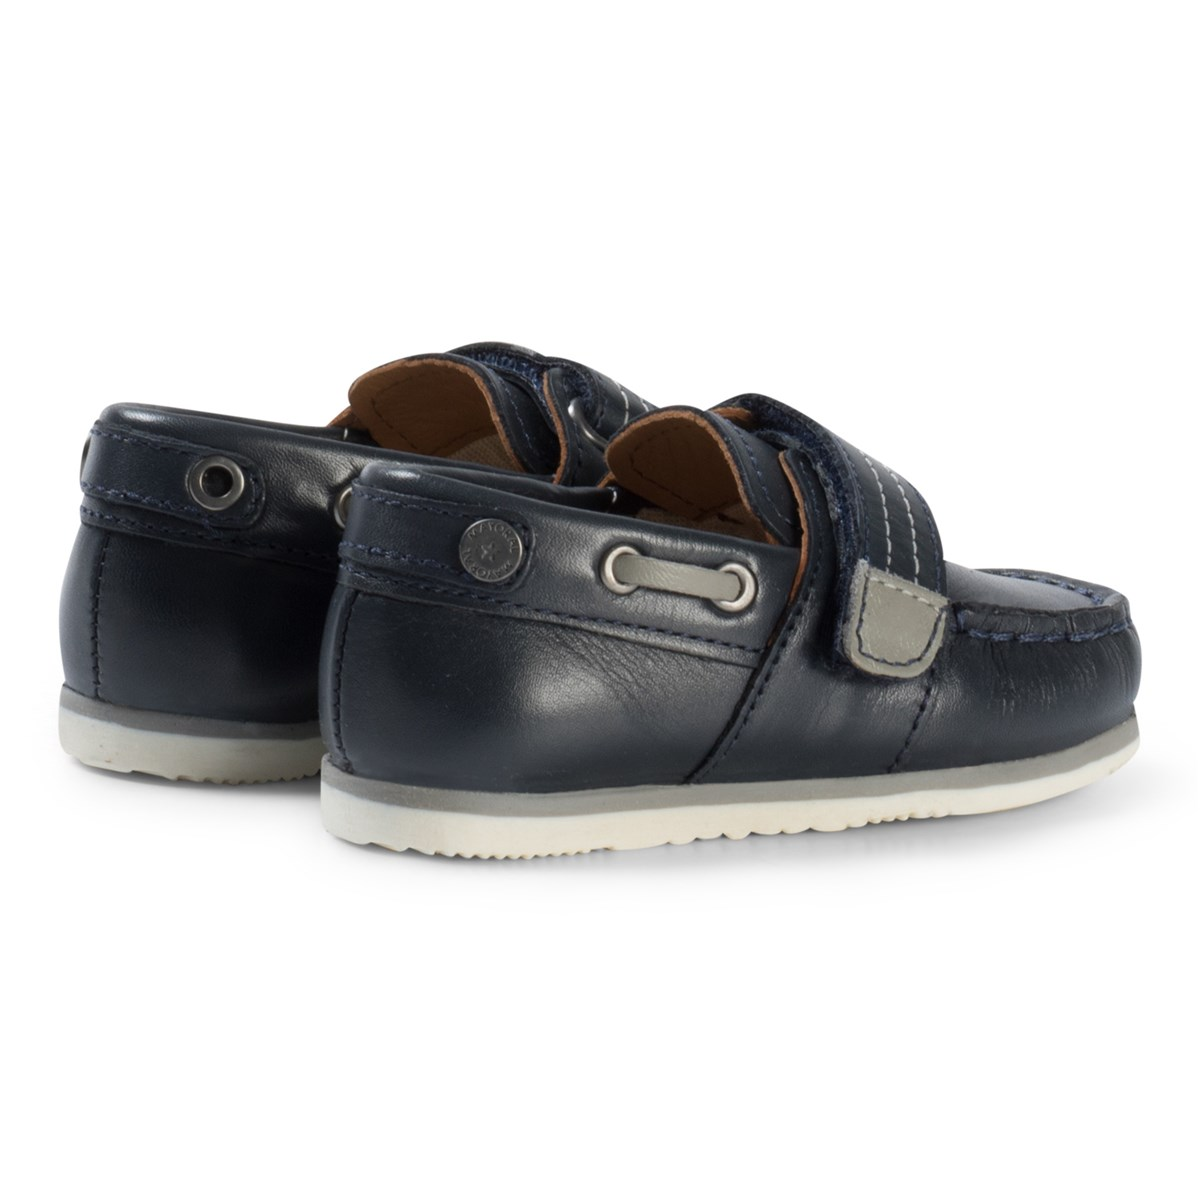 9873455b9056 Mayoral Navy Leather Velcro Boat Shoes